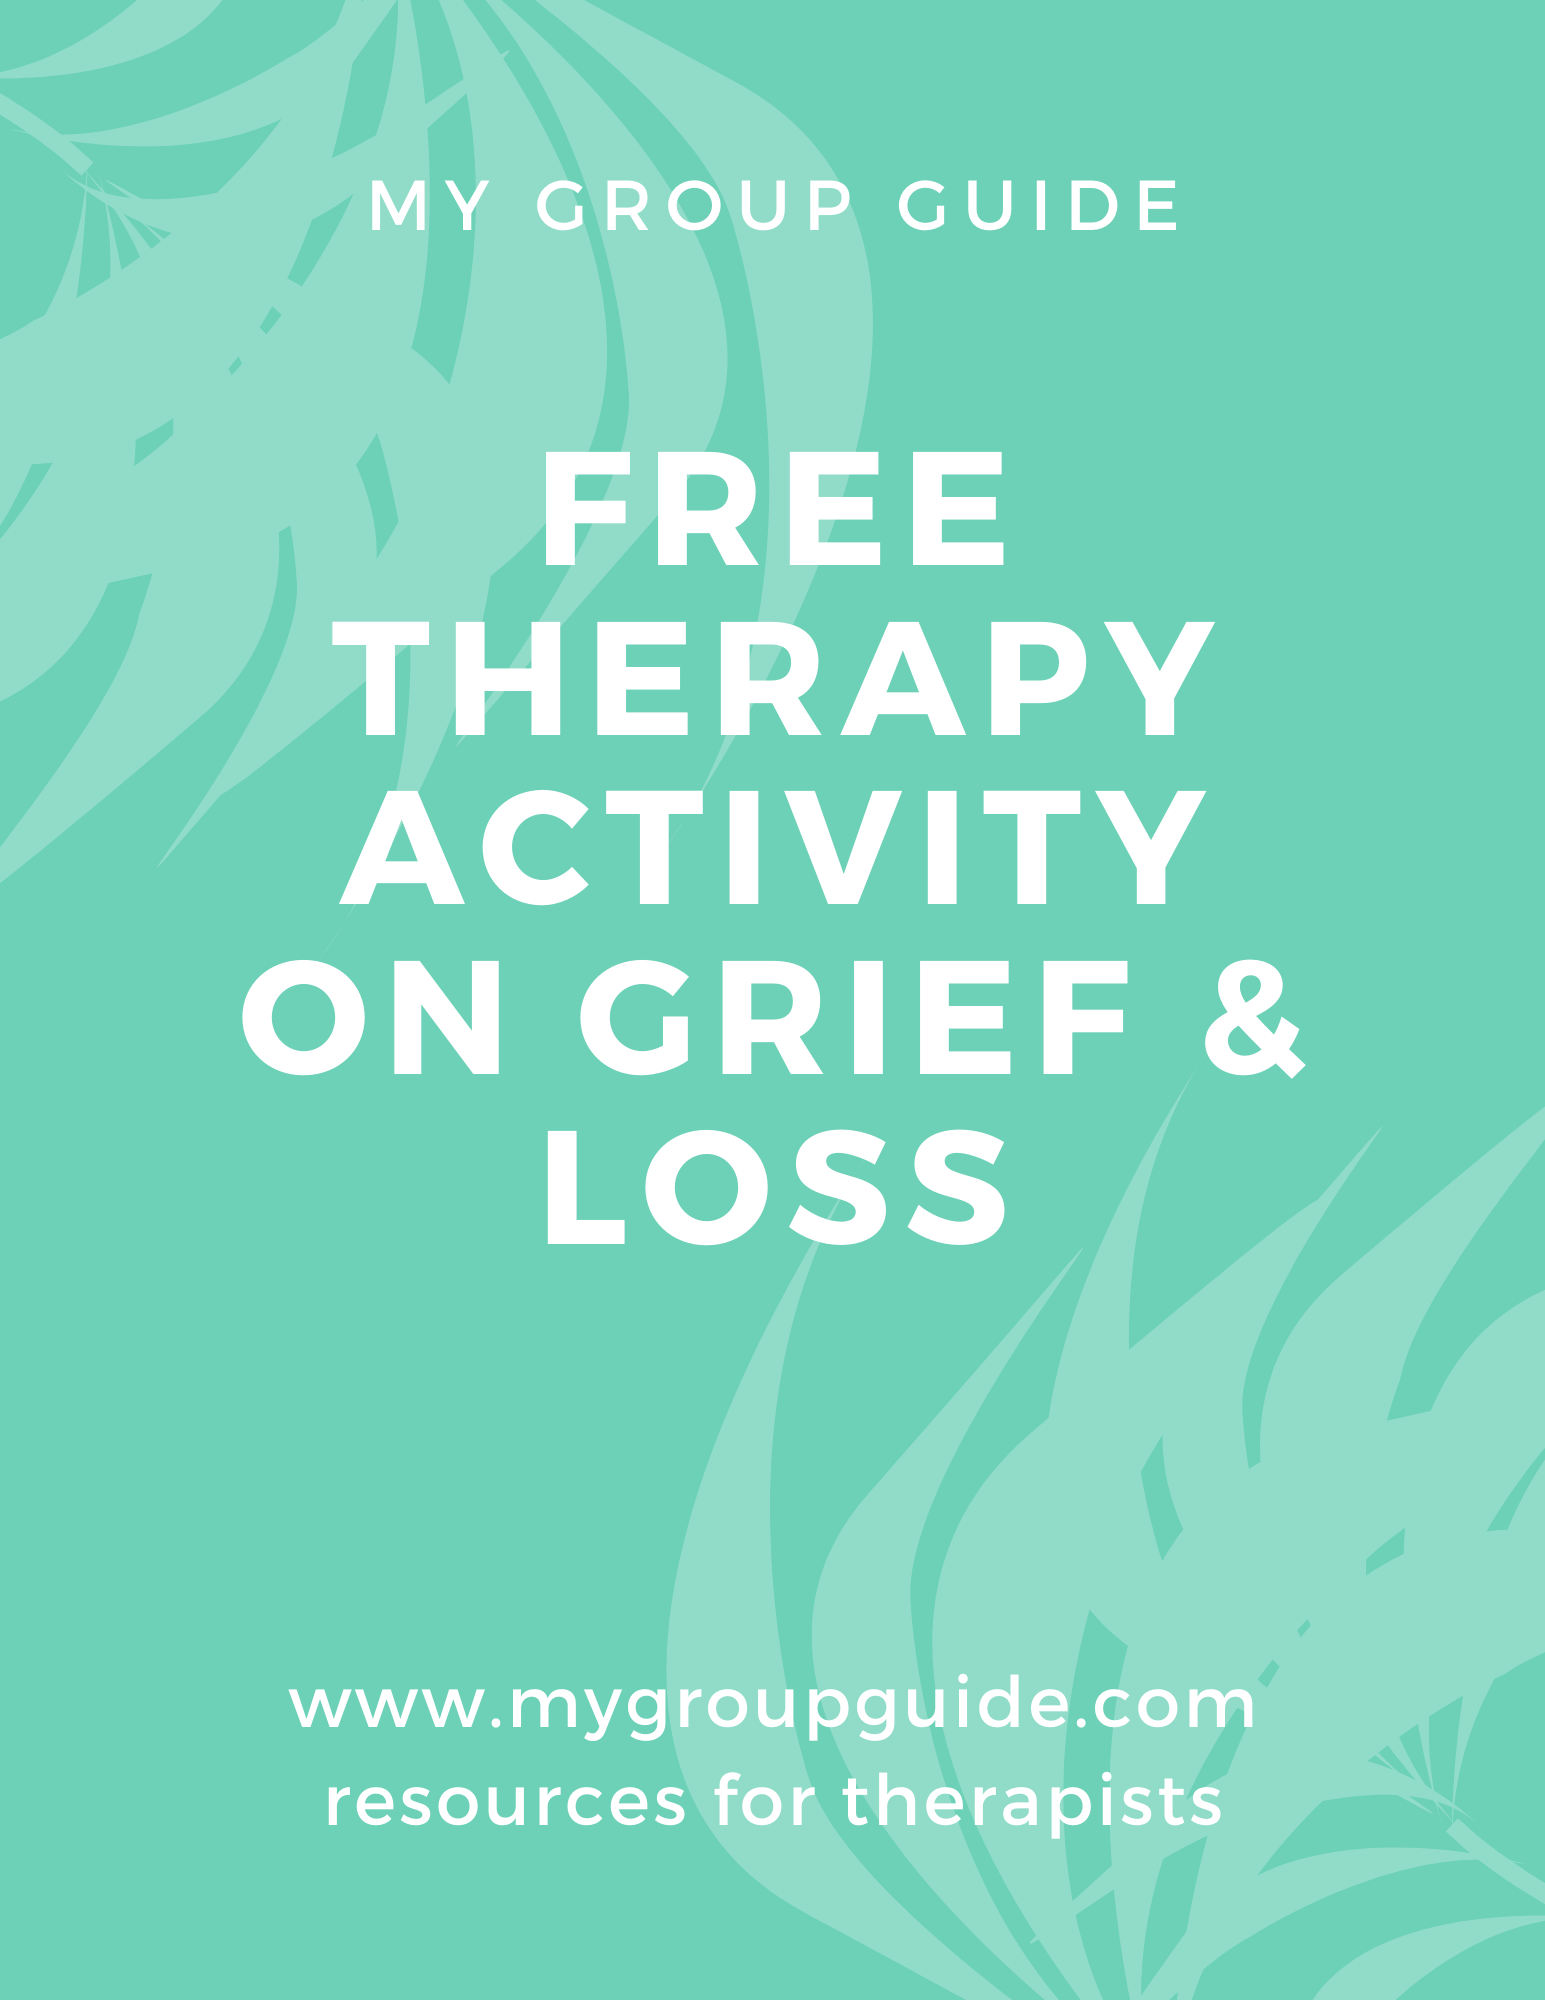 My Group Guide Group Therapy Activity On Grief Amp Loss In